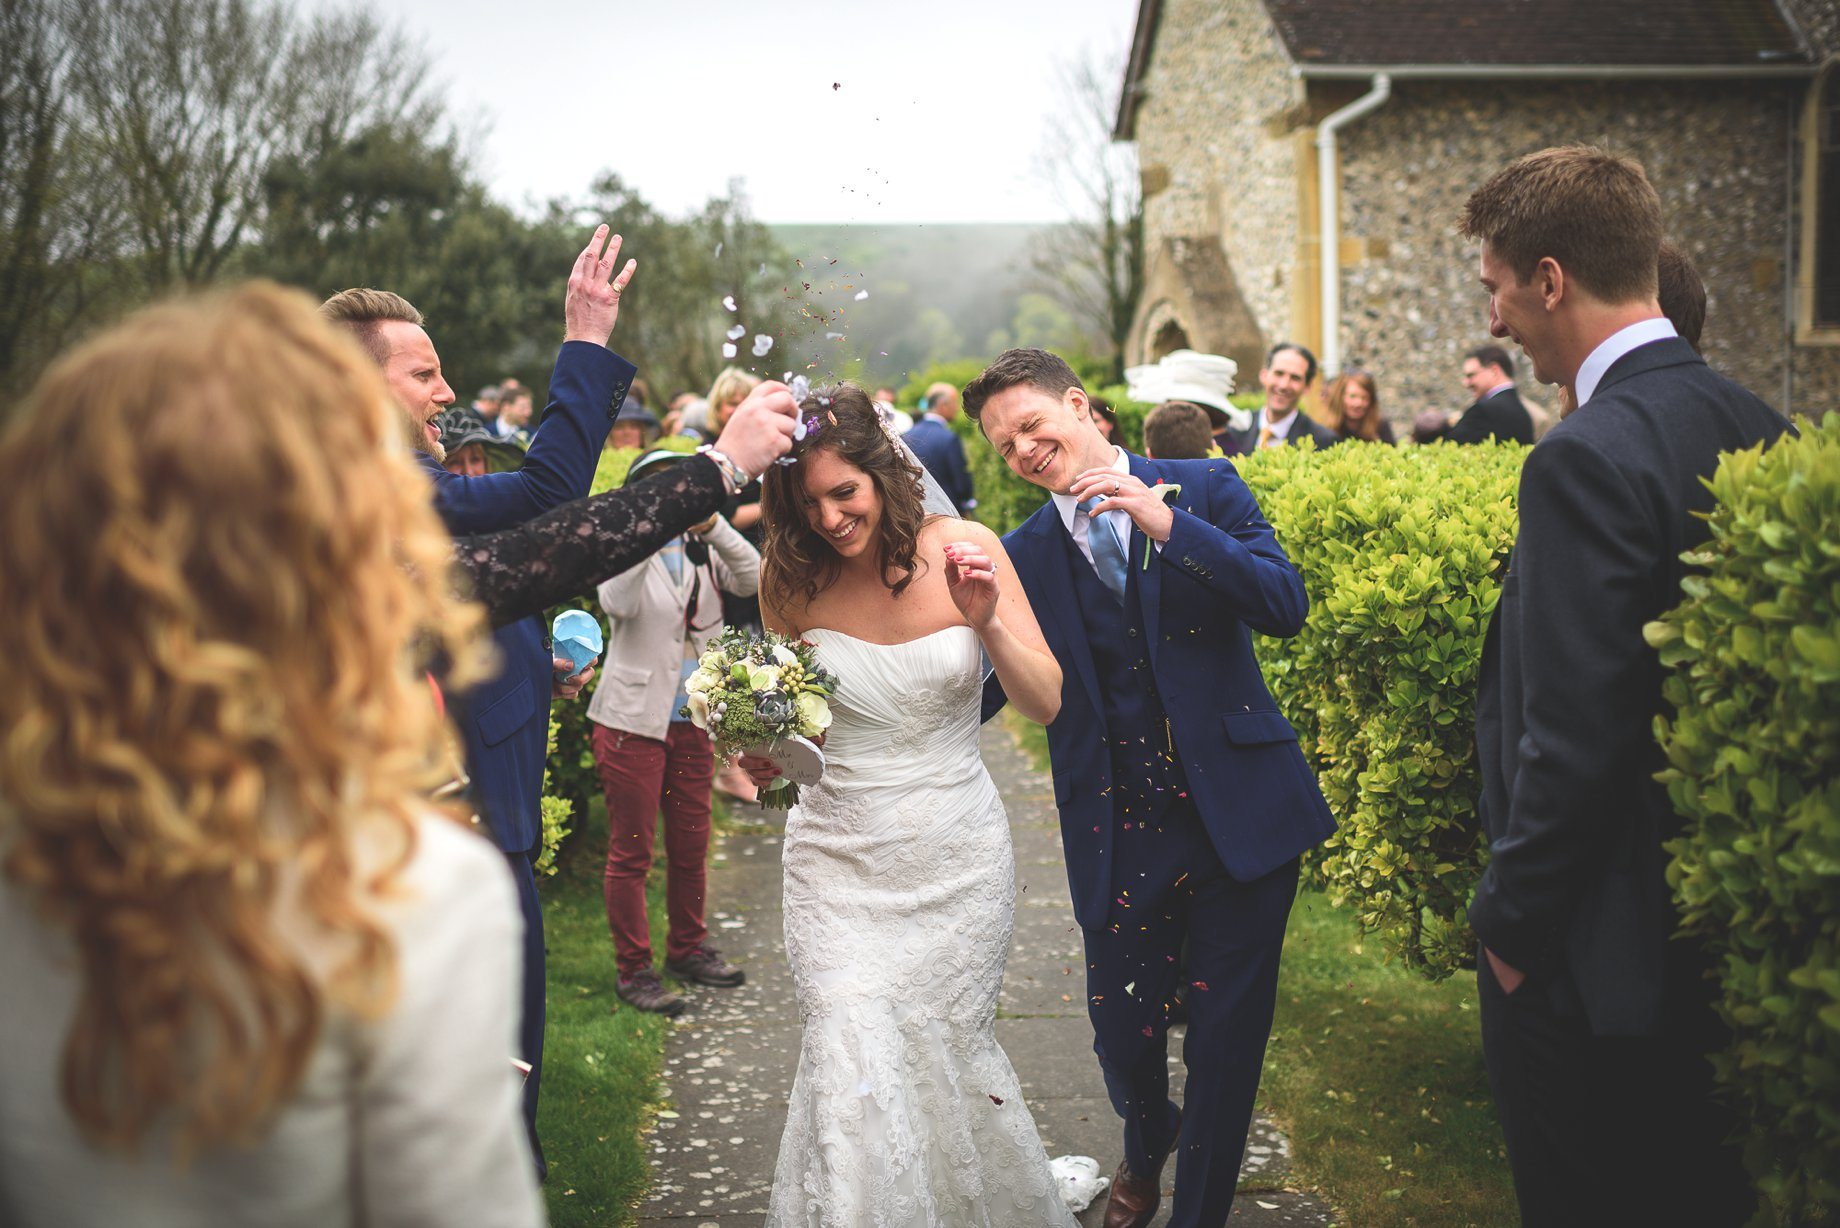 Louisa-and-Chris-West-Sussex-wedding-photography-73-of-160